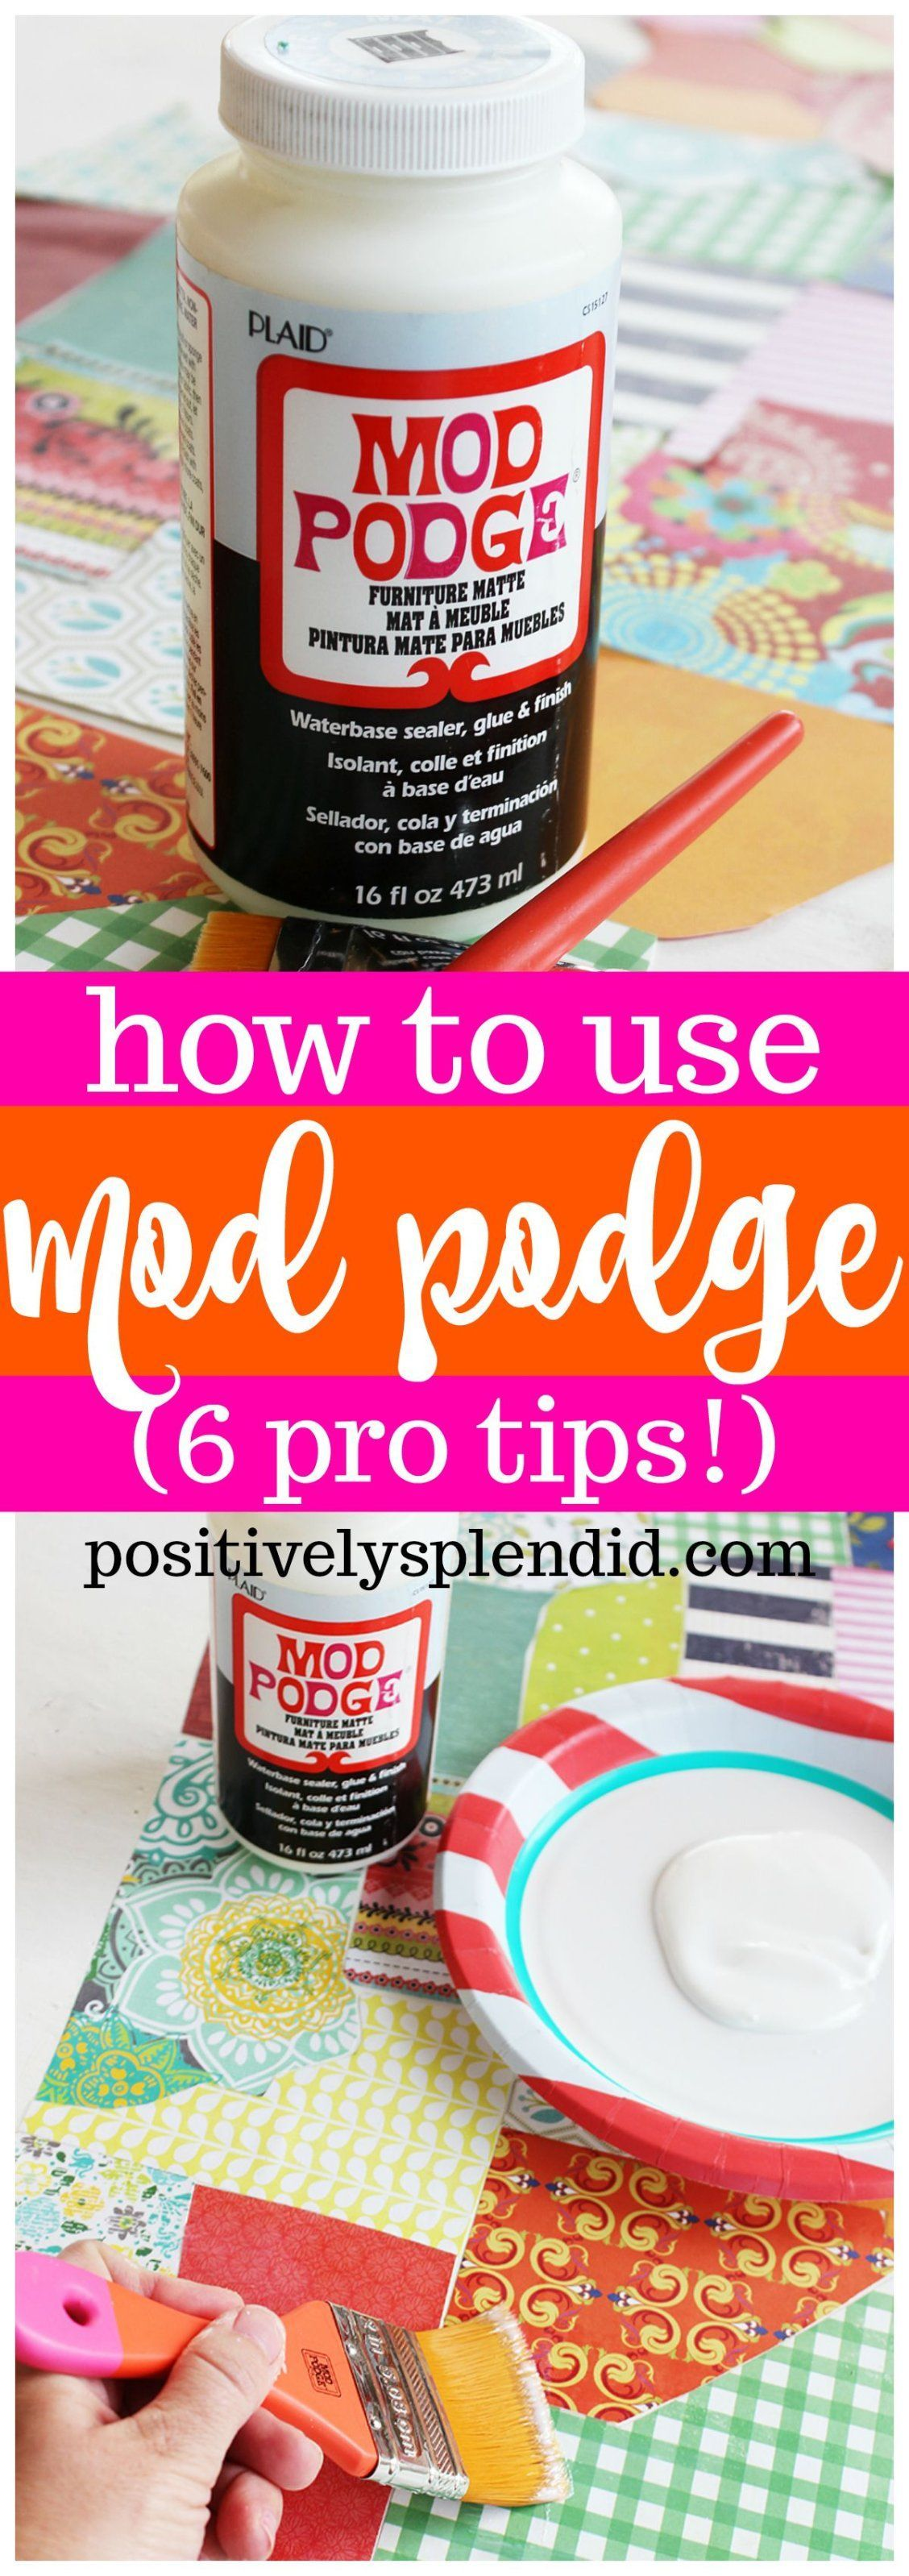 How to Use Mod Podge Like a Pro - 6 Great Tips and Tricks! #decopodge